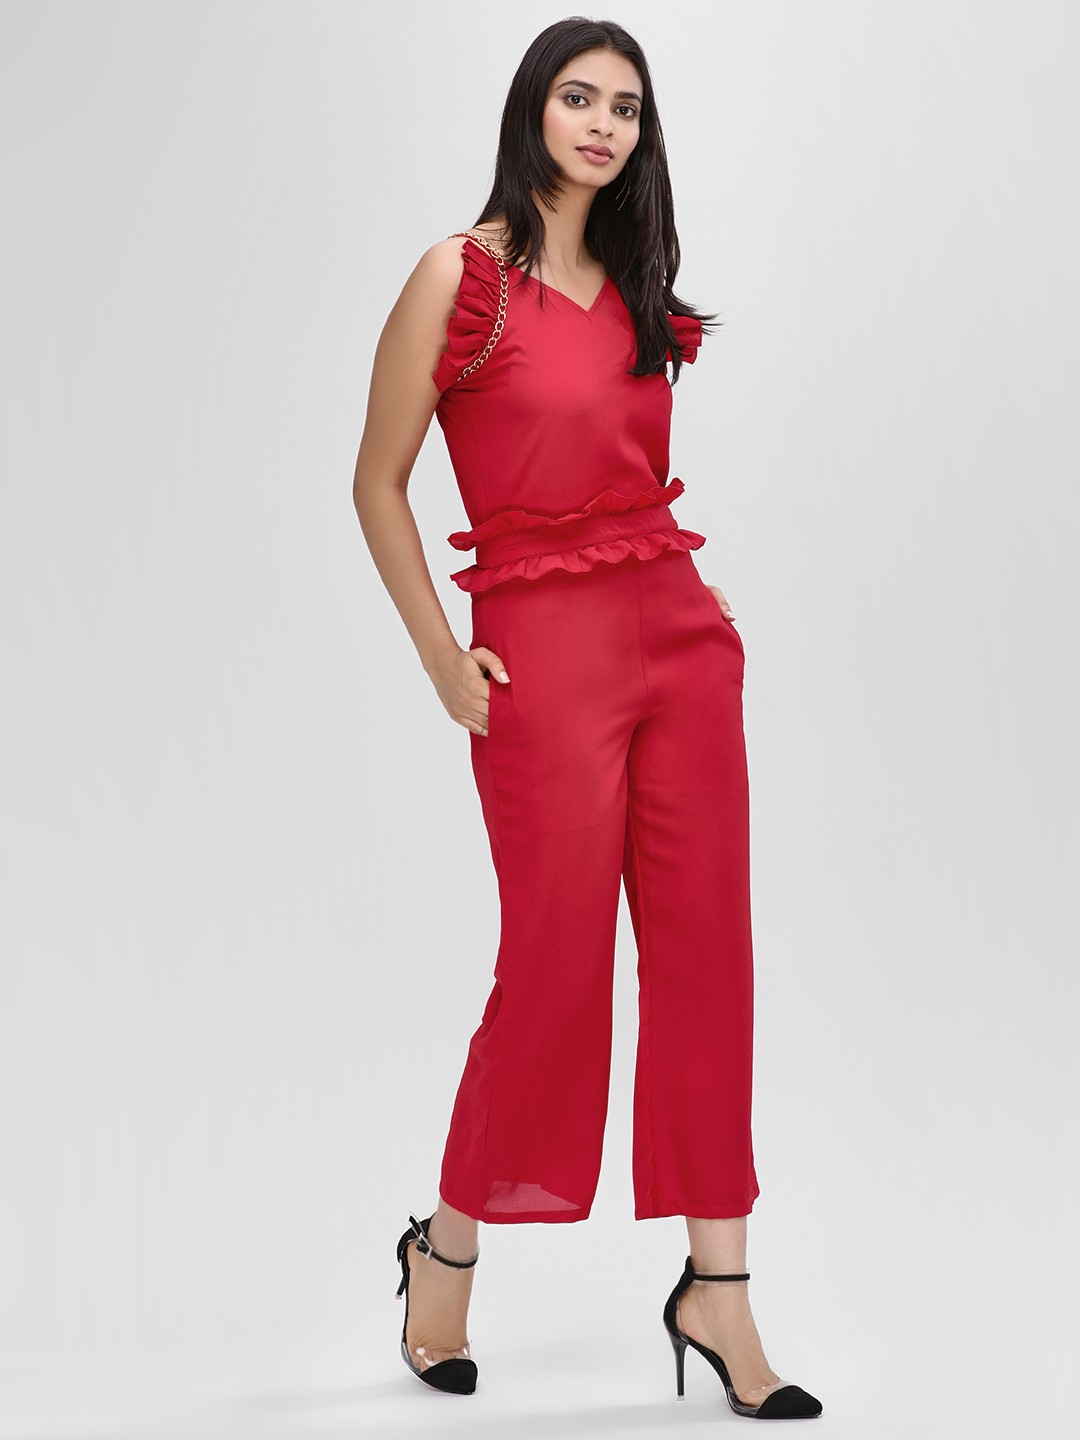 Street9 Red Ruffle Detail Strappy Jumpsuit 1